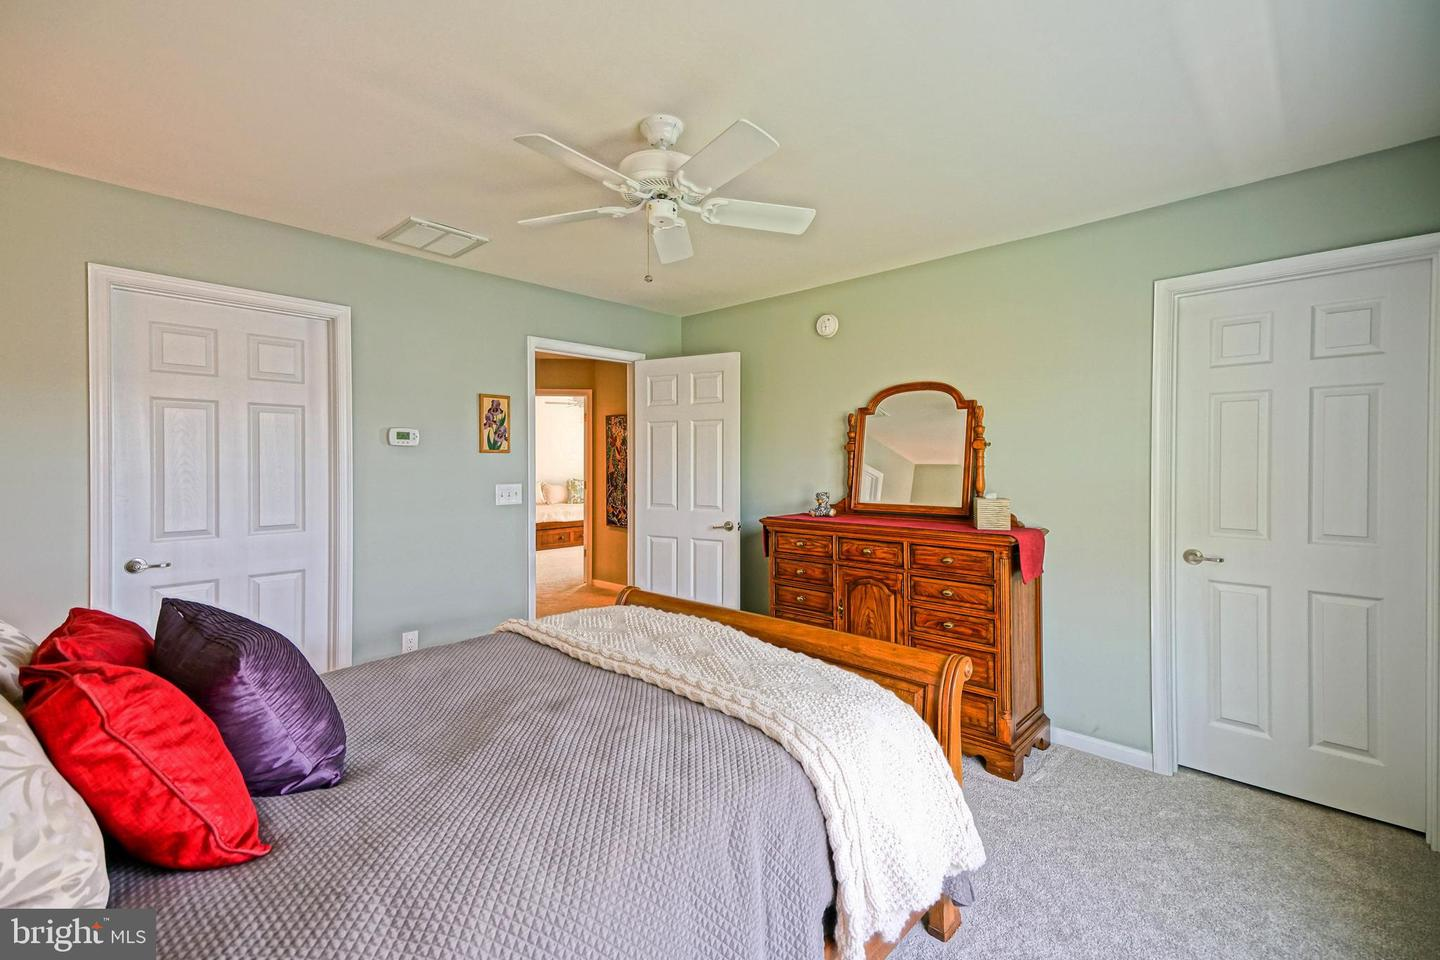 DESU139128-301667383935-2019-08-05-10-43-56 35222 Overfalls Dr N | Lewes, DE Real Estate For Sale | MLS# Desu139128  - Lee Ann Group